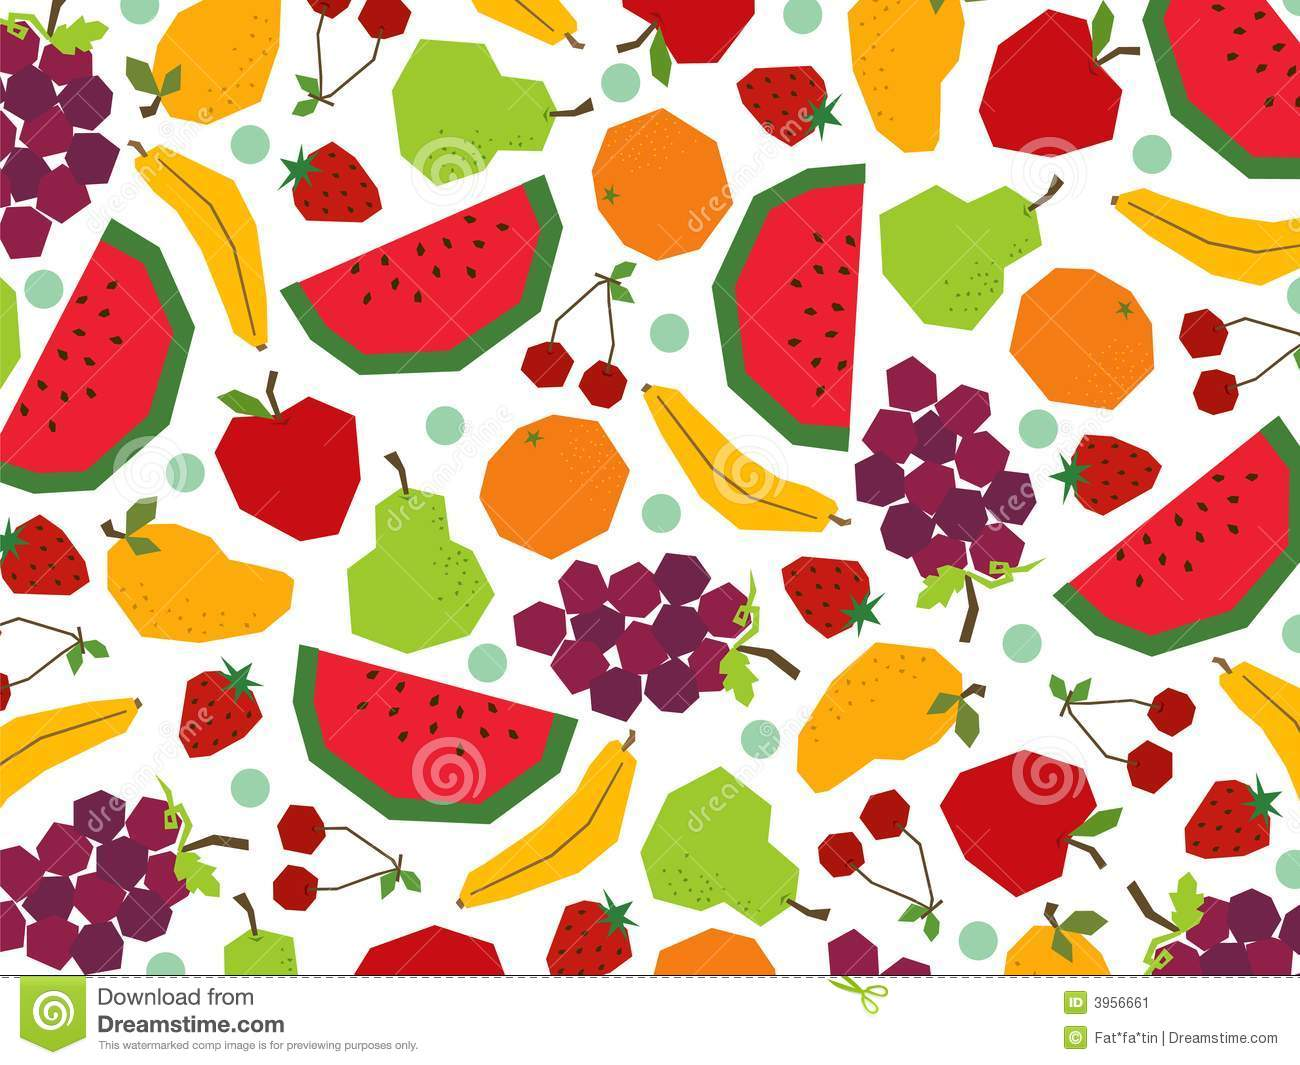 Cute Trendy Wallpapers Retro Papercut Fruits Stock Image Image 3956661